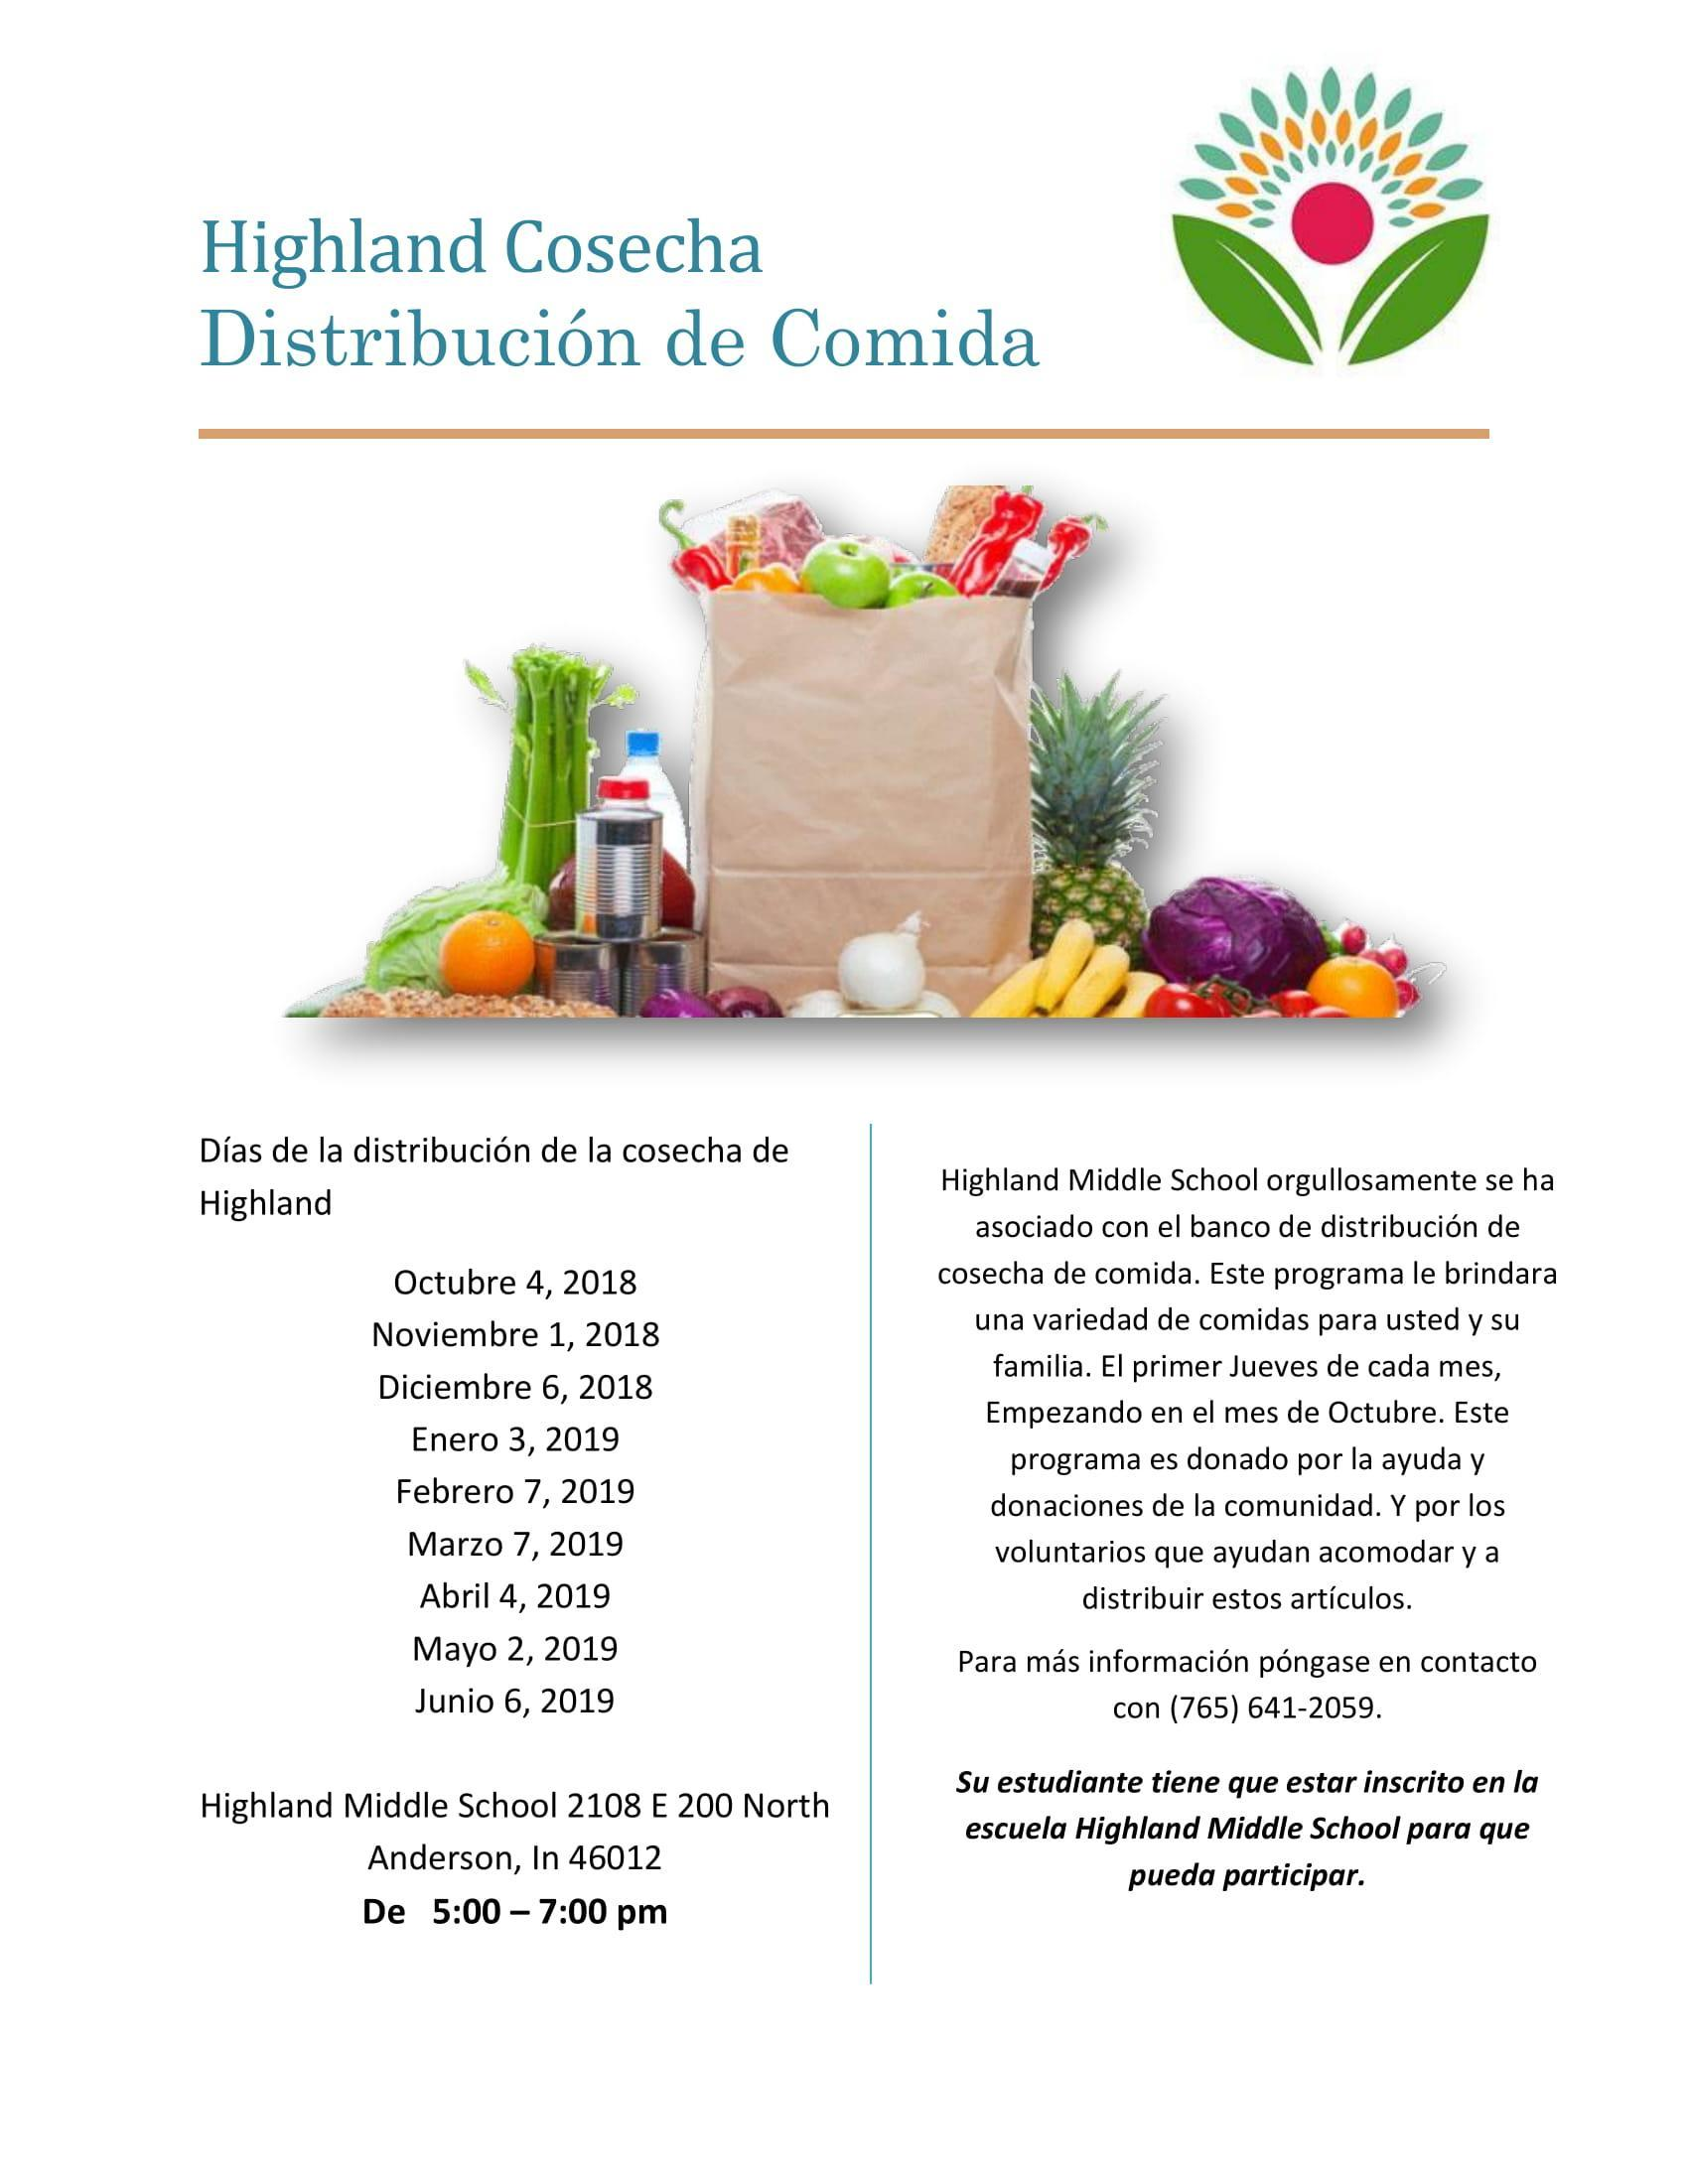 flyer in Spanish for the Highland Harvest food distribution